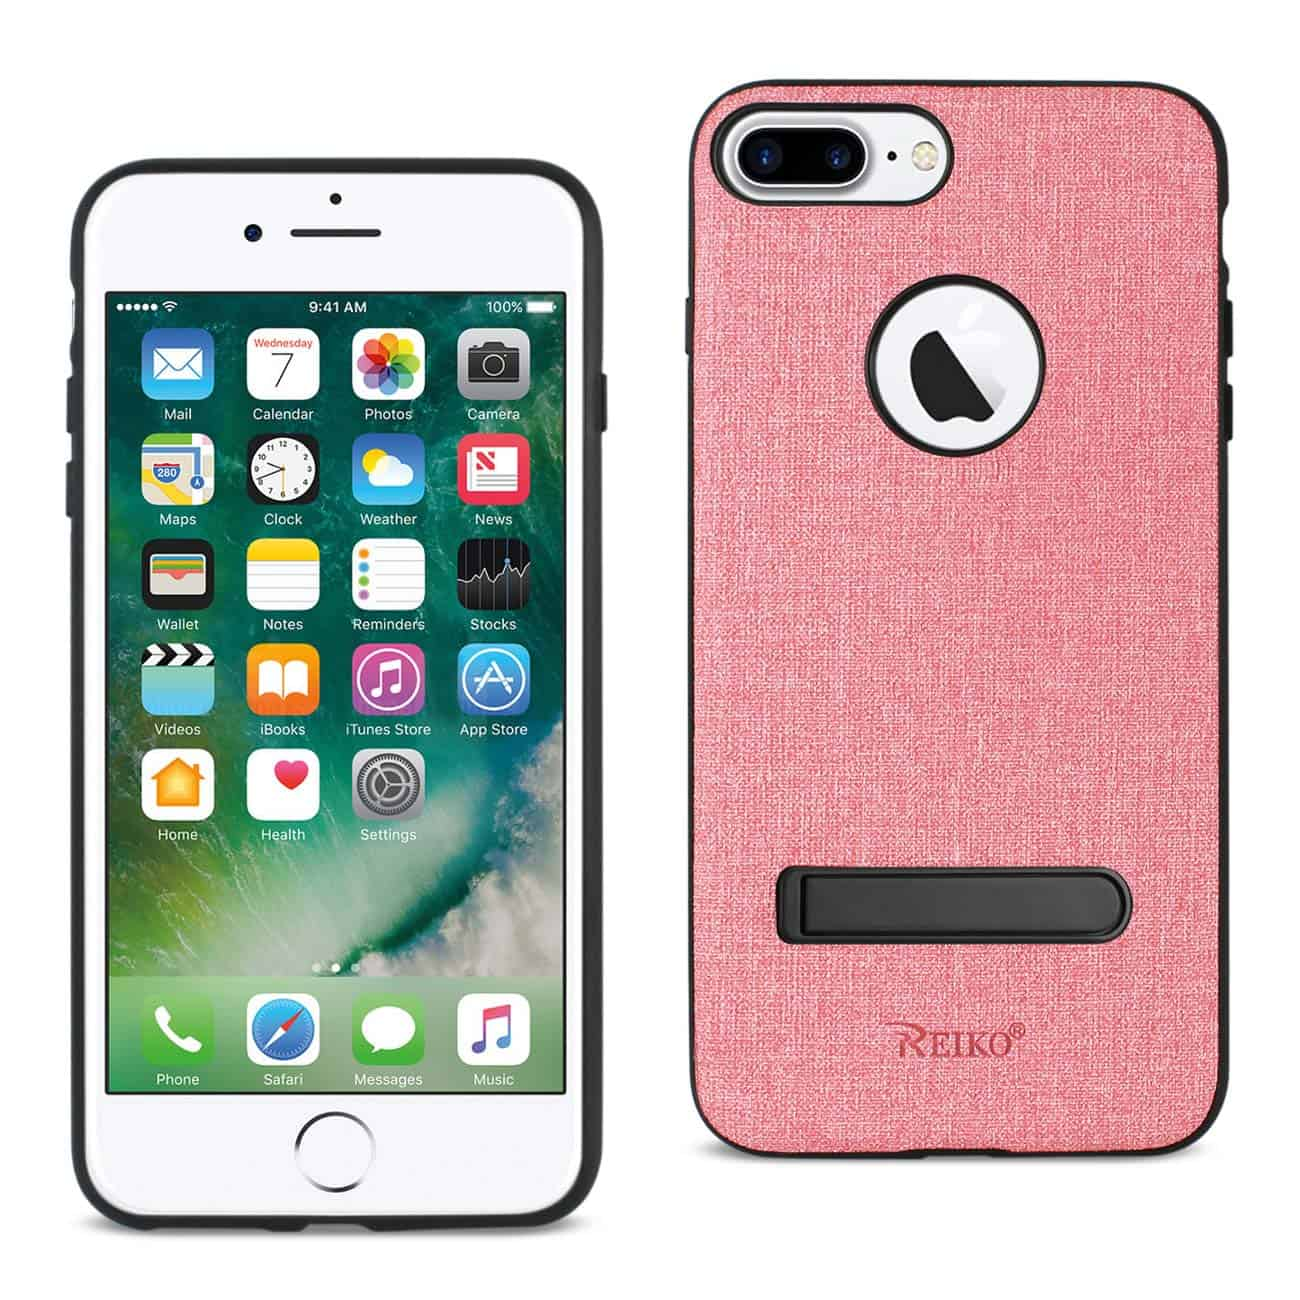 IPHONE 7 PLUS/ 8 PLUS  RUGGED TEXTURE TPU PROTECTIVE COVER IN PINK